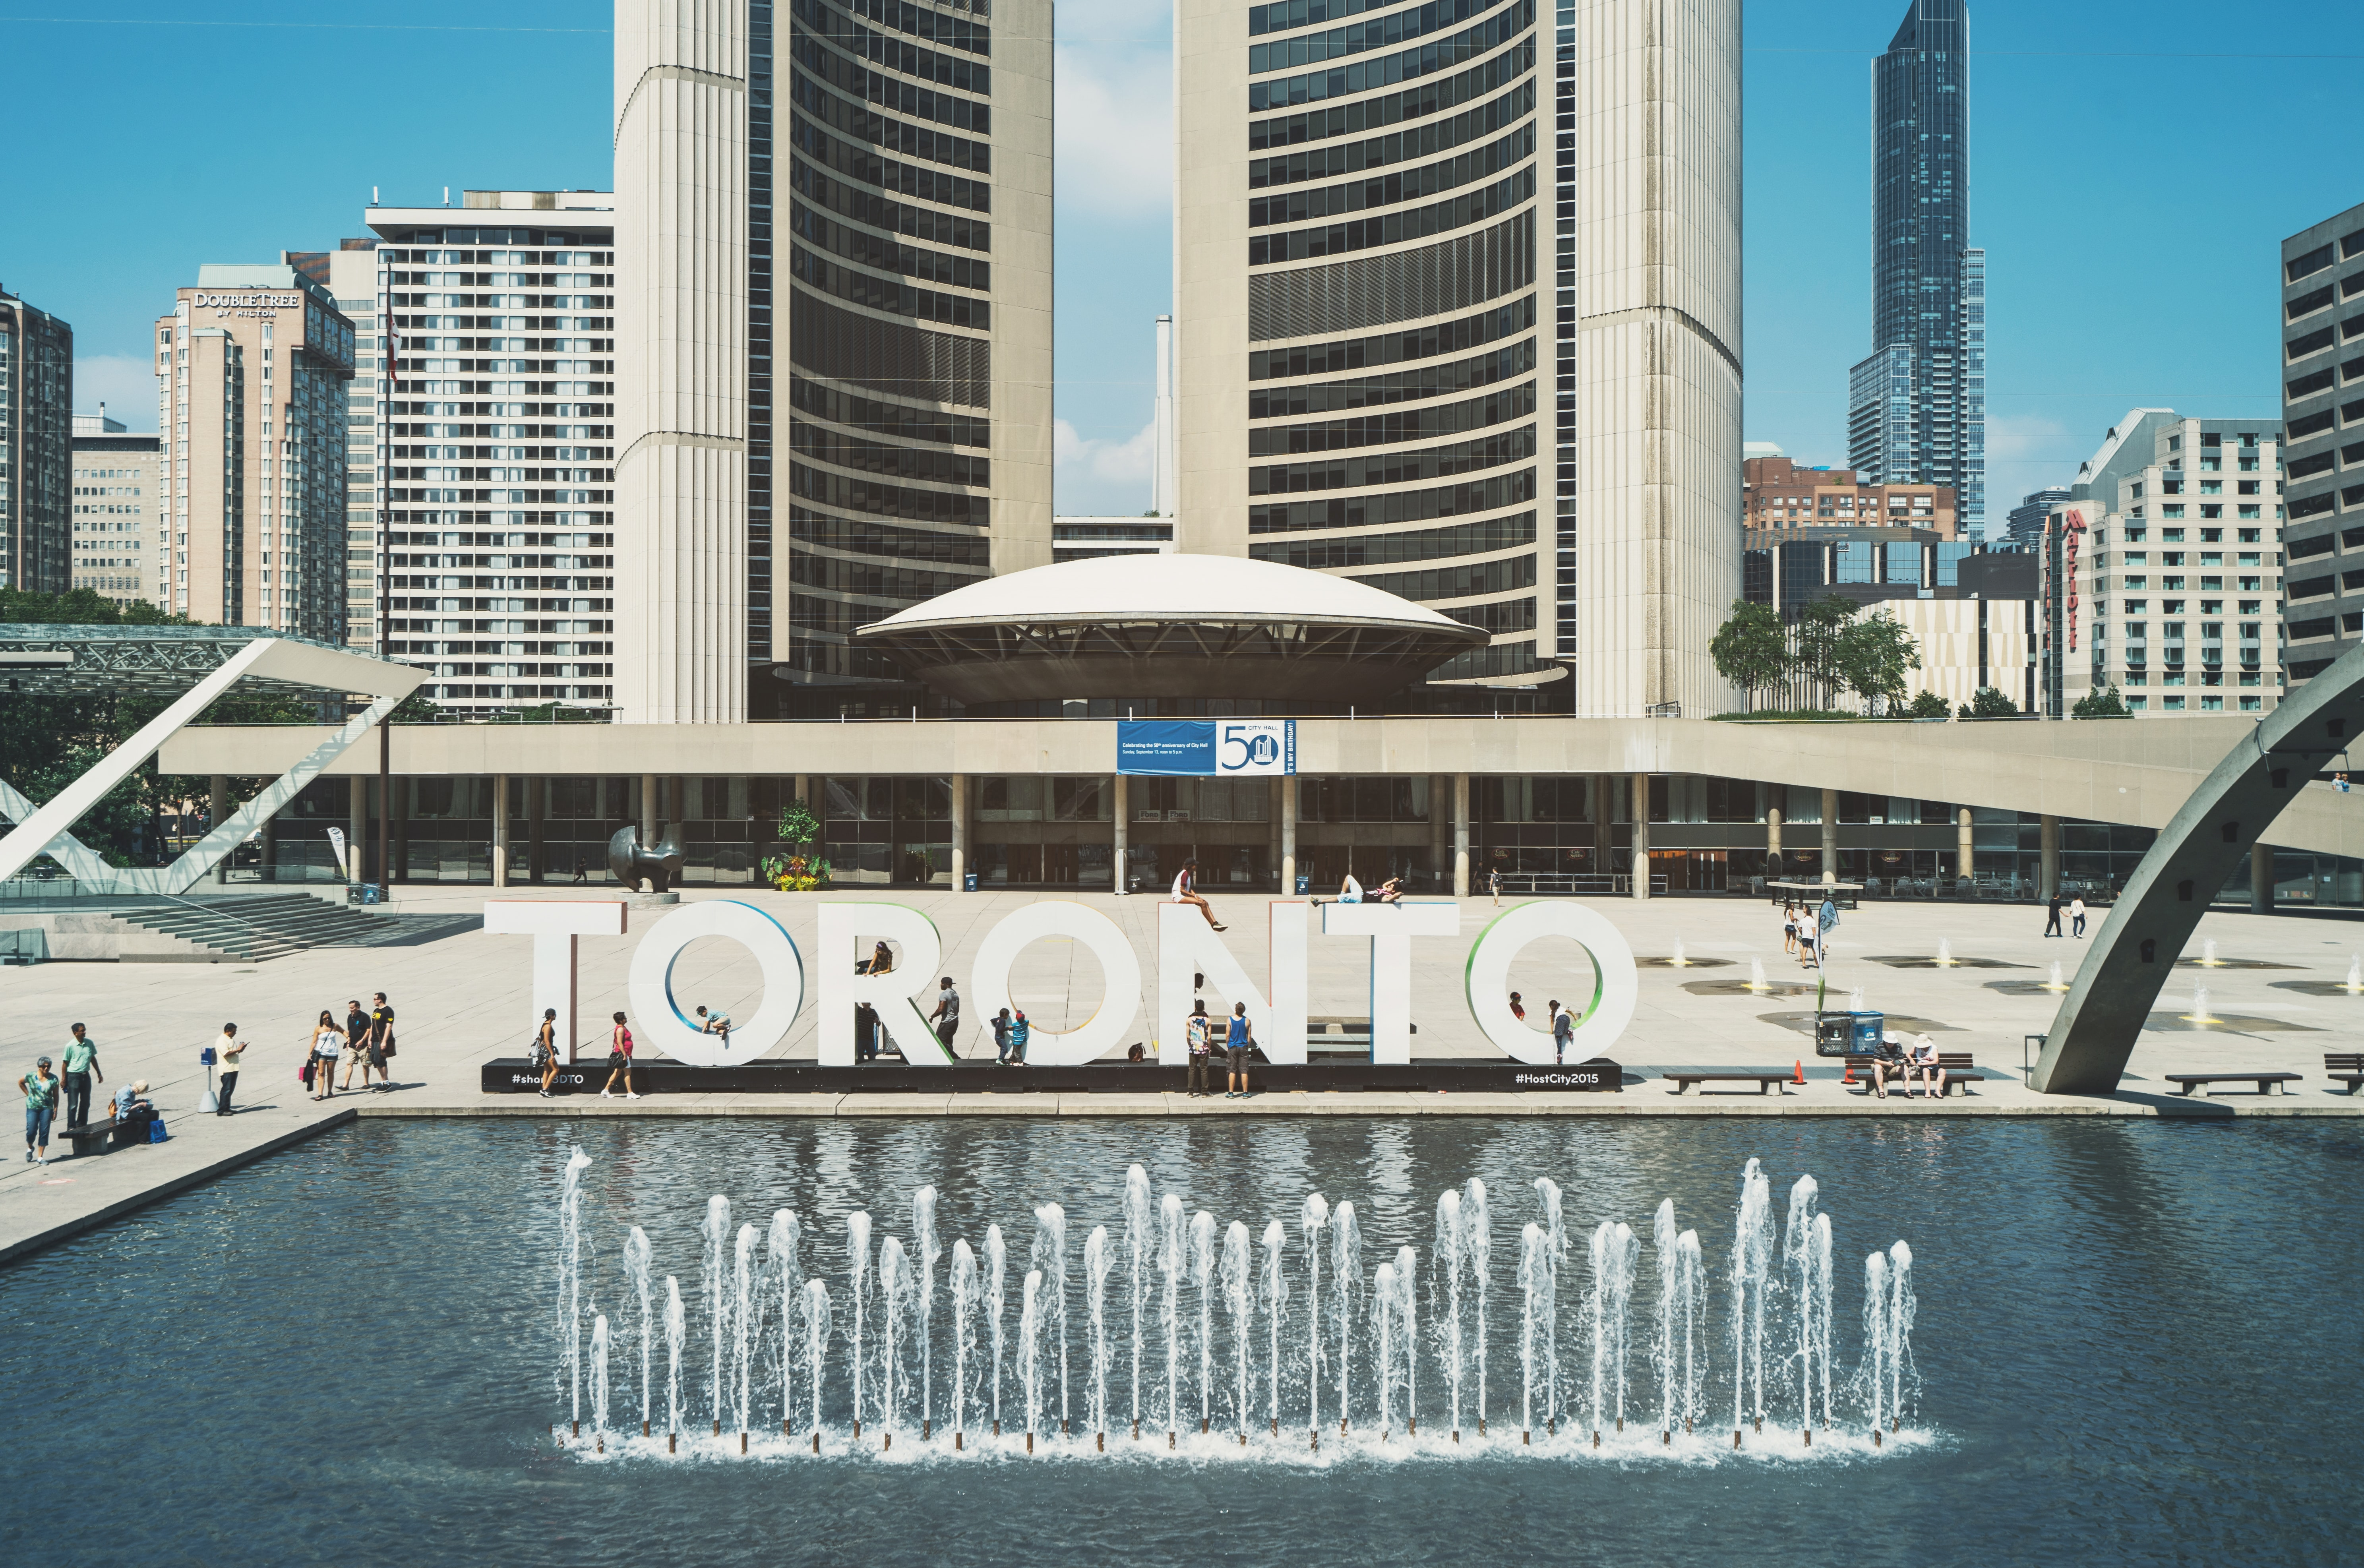 """Large letters spell out """"Toronto"""" next to a fountain in an urban plaza"""